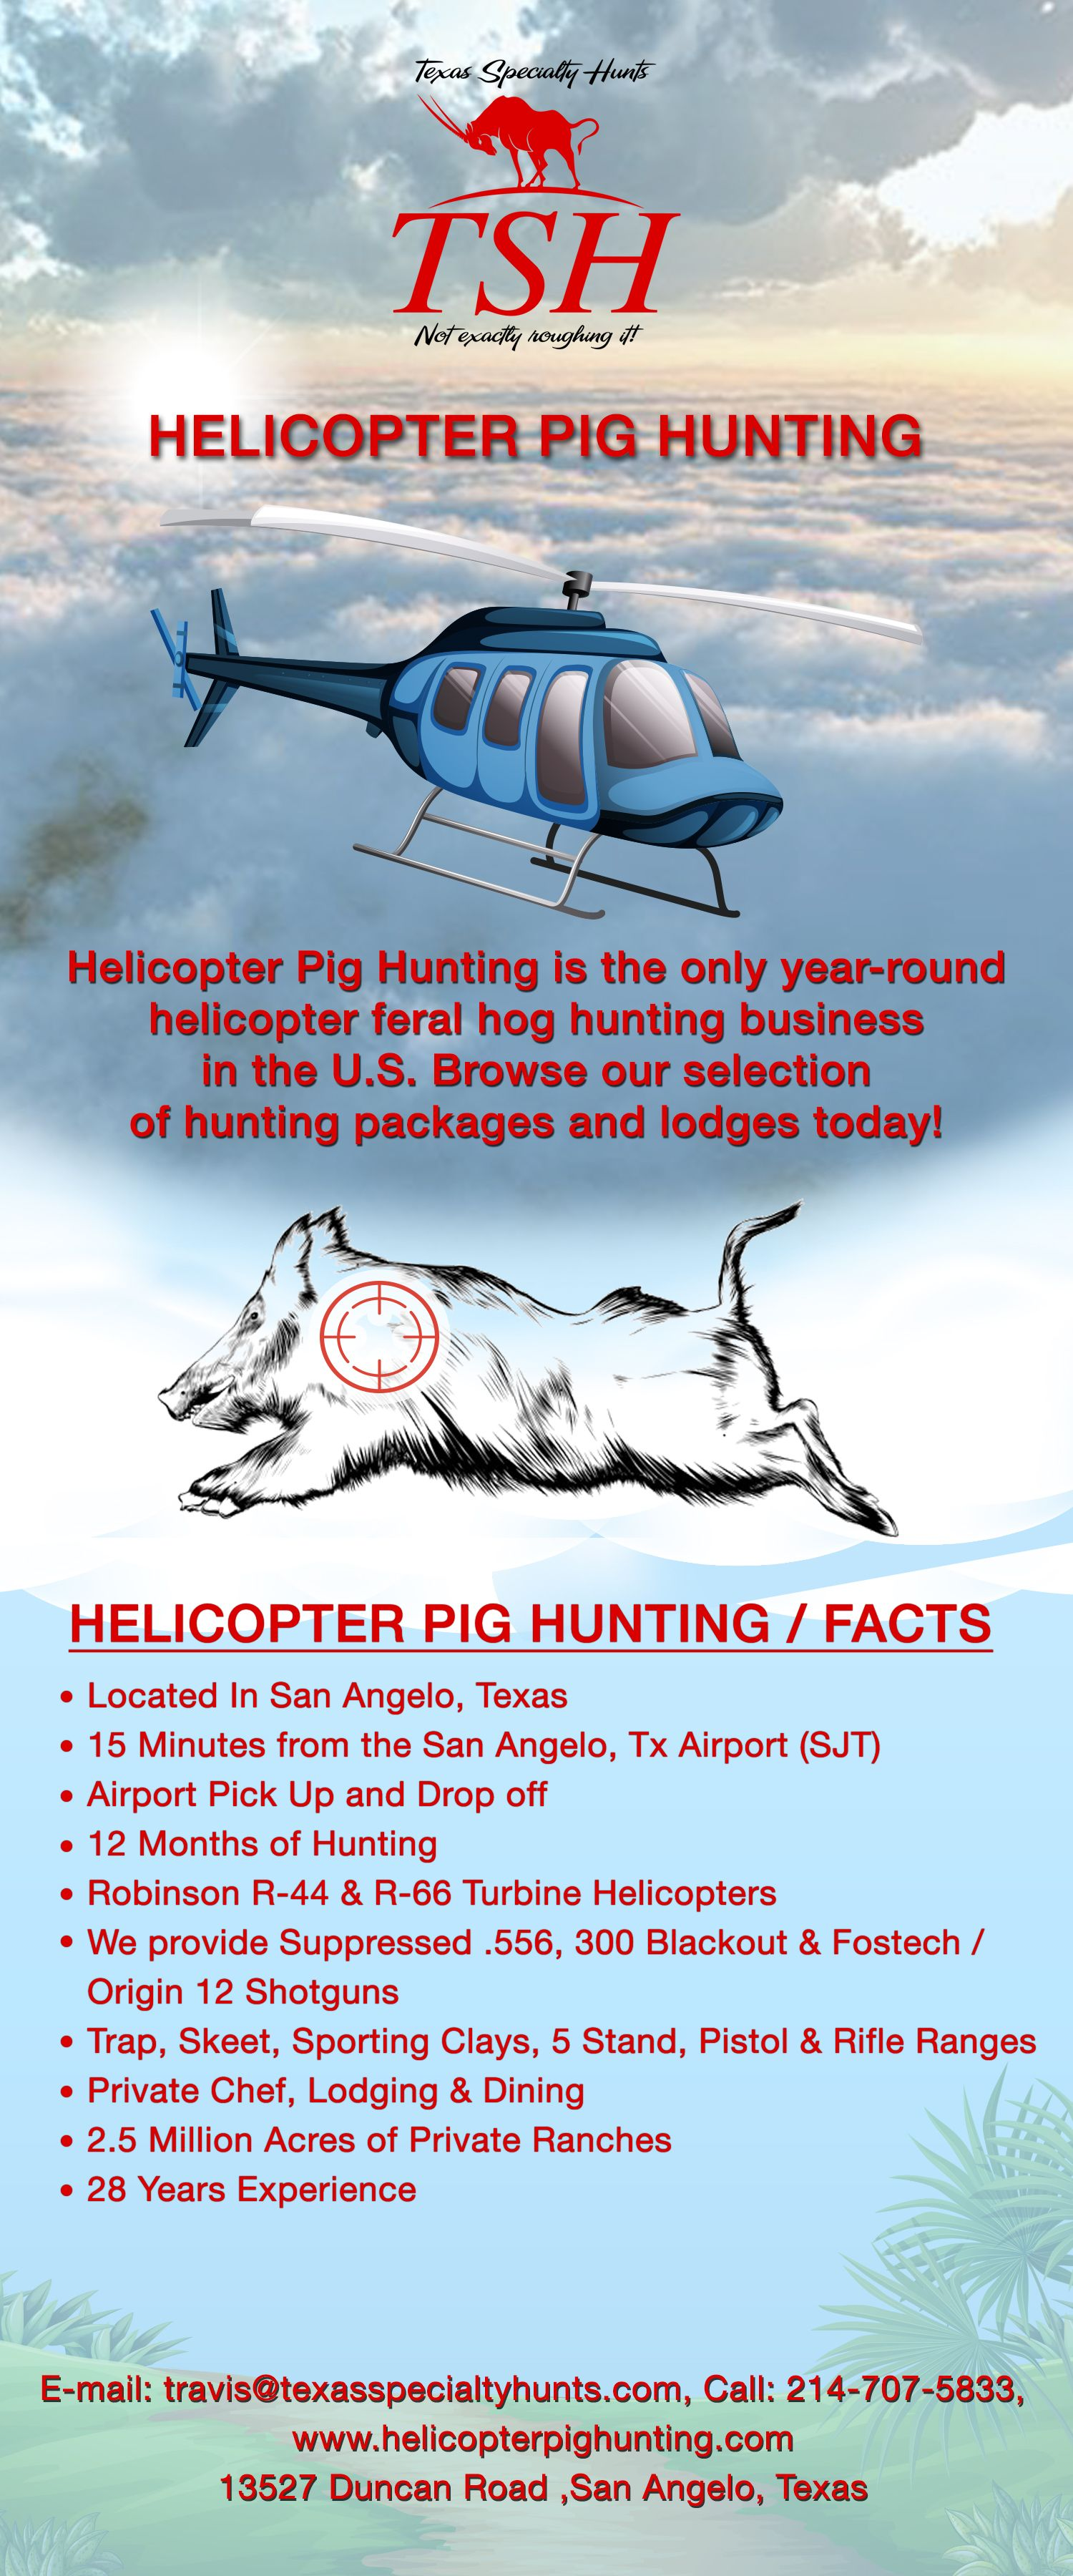 Helicopter pig hunting is the only yearround helicopter